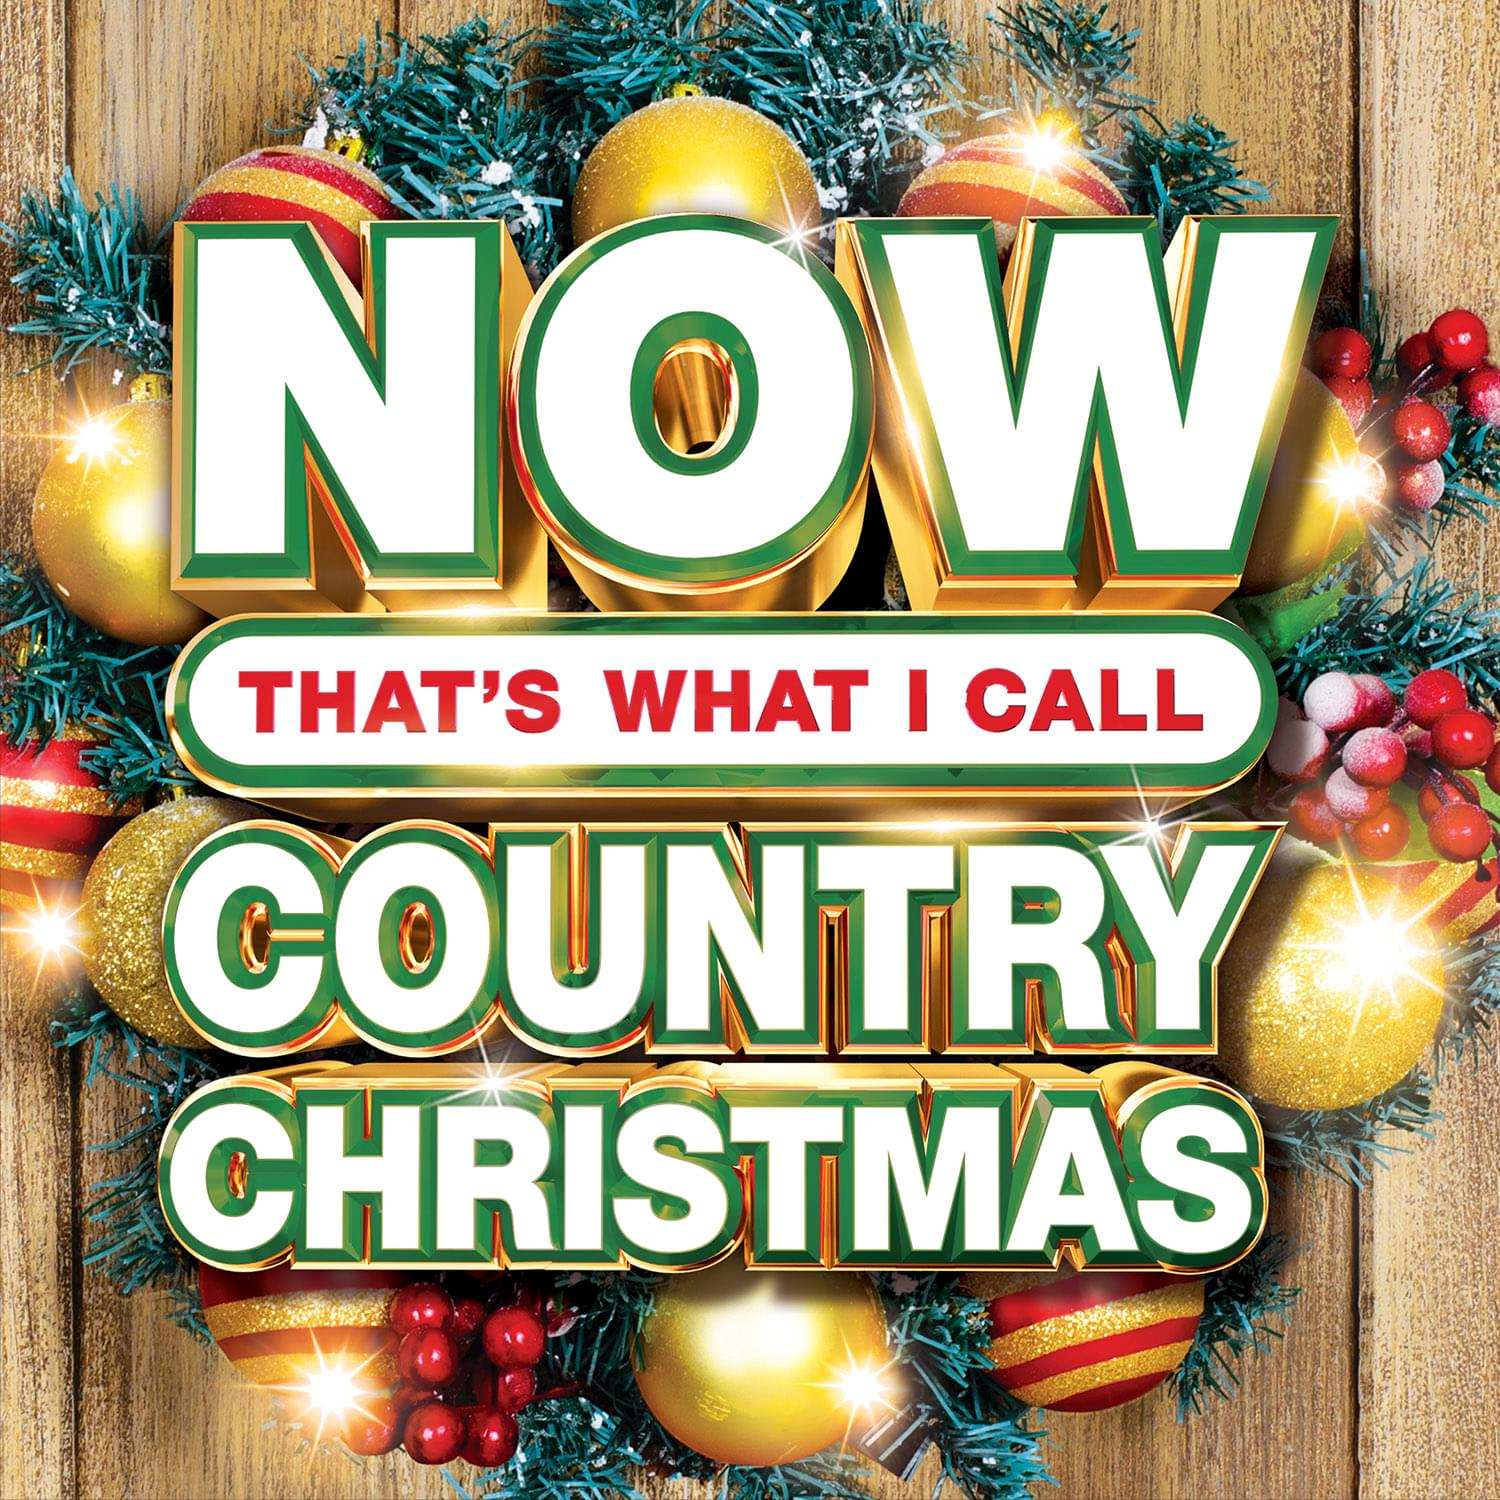 Enter to win a copy of NOW That's What I Call Country Christmas!